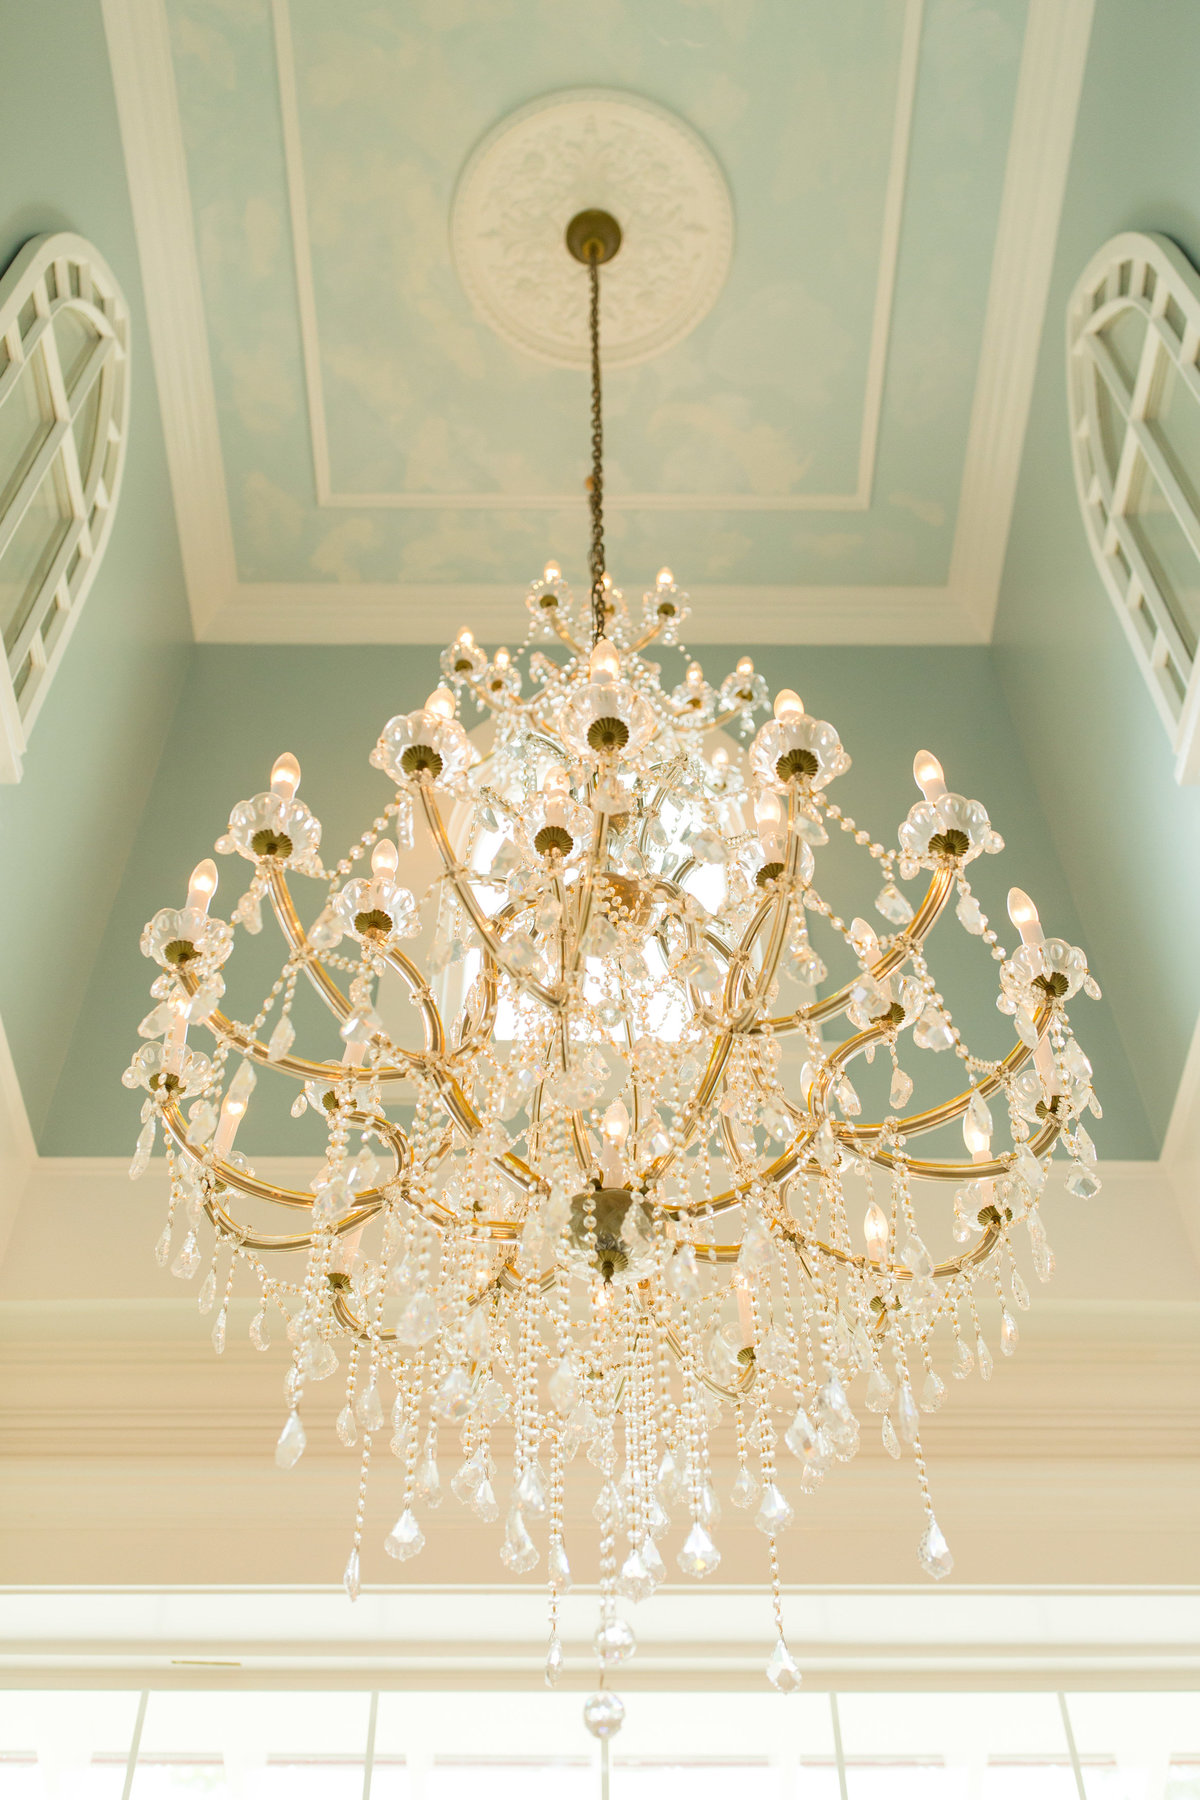 large chandelier in savannah at a wedding